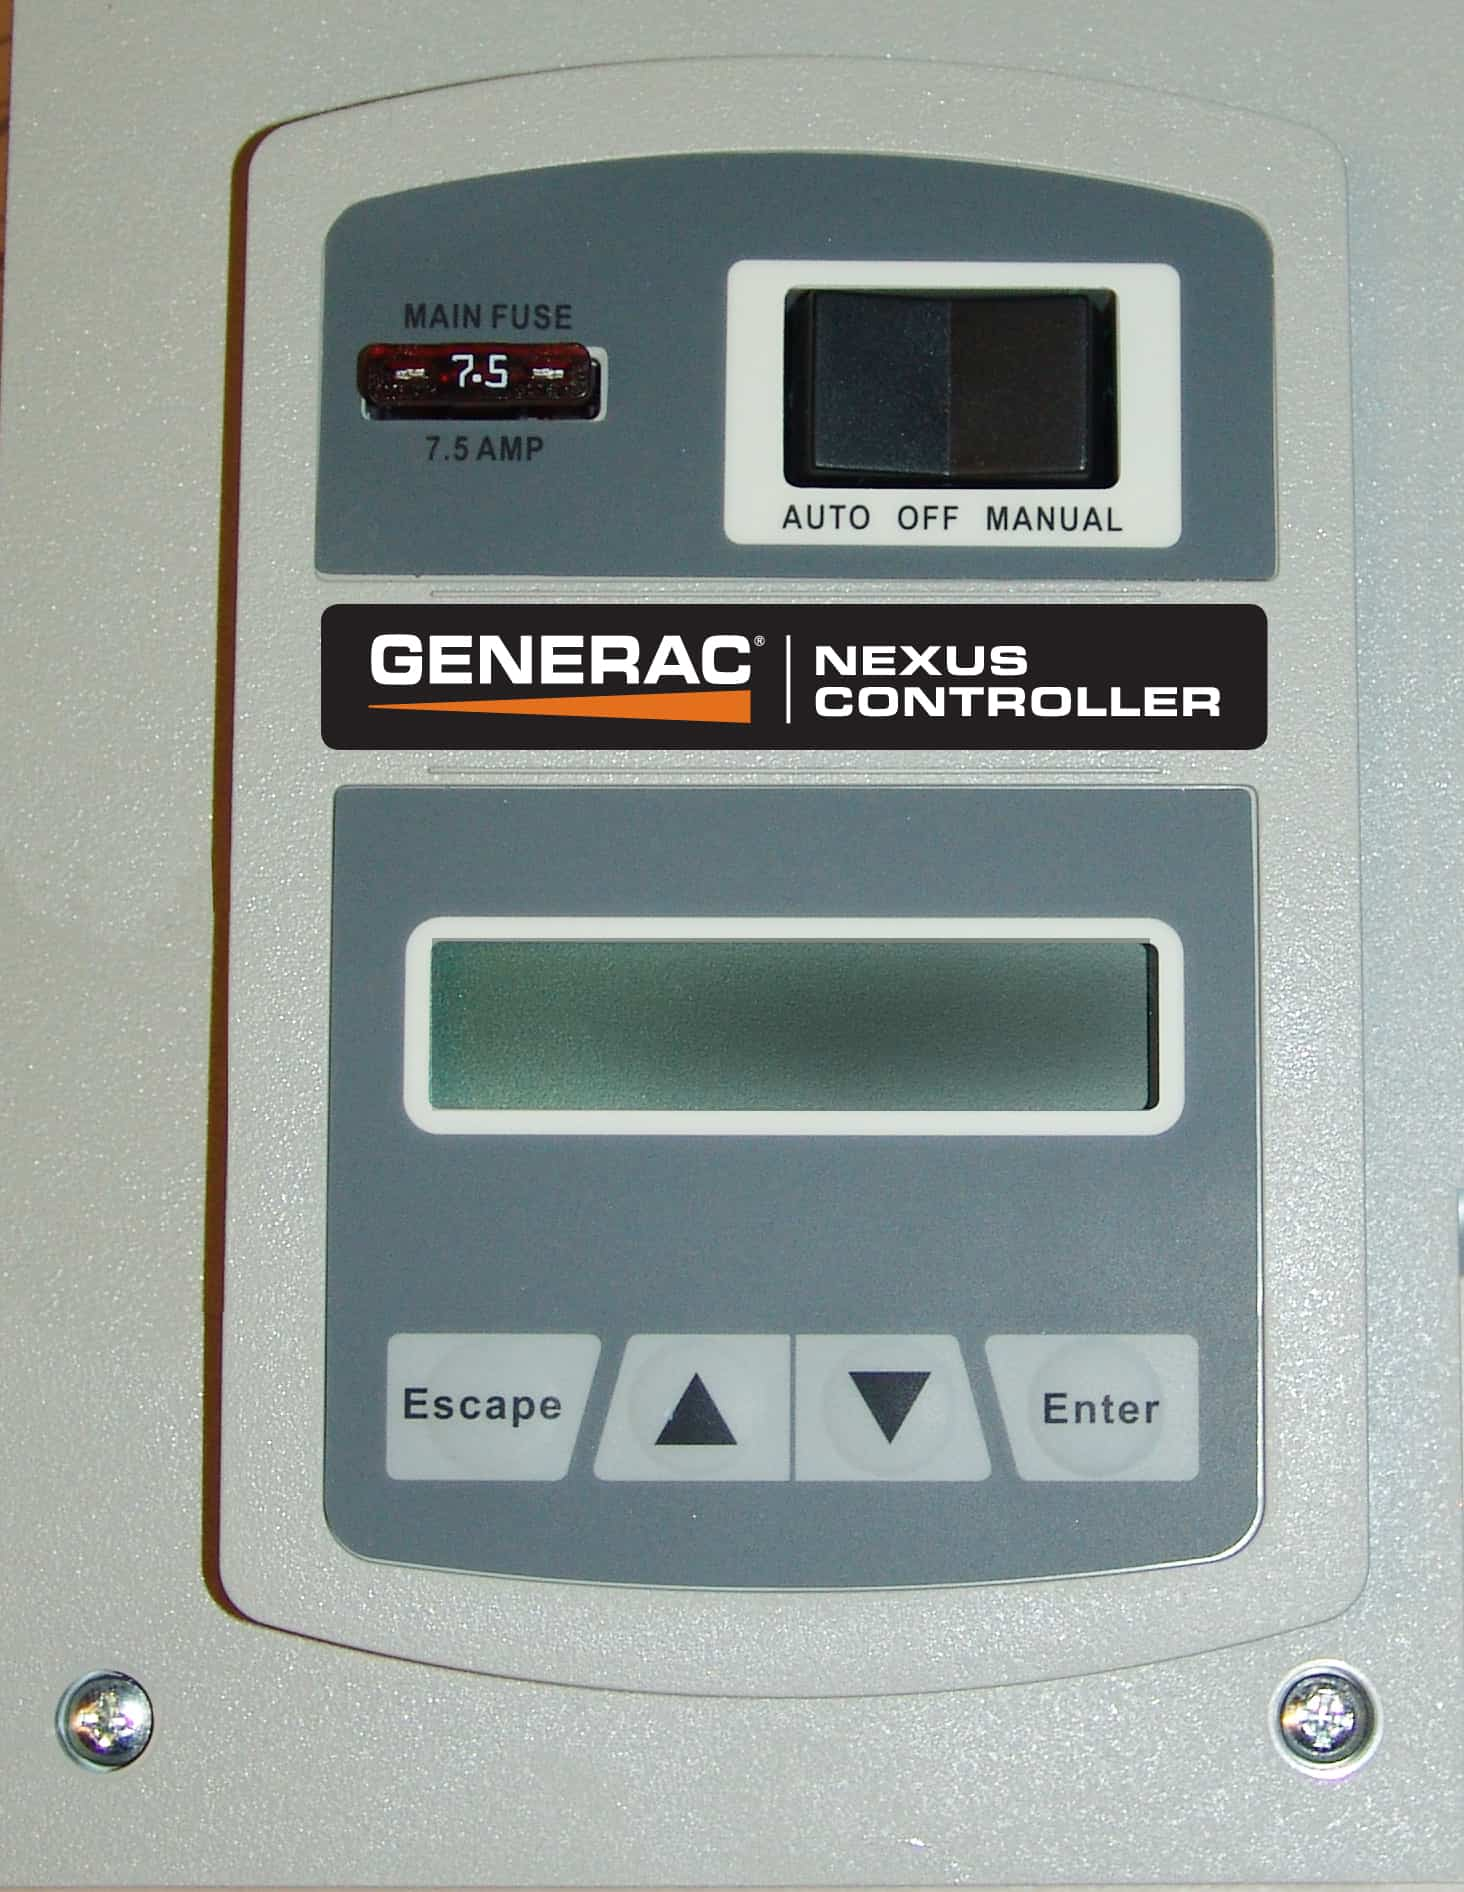 The Generac Nexus Controller